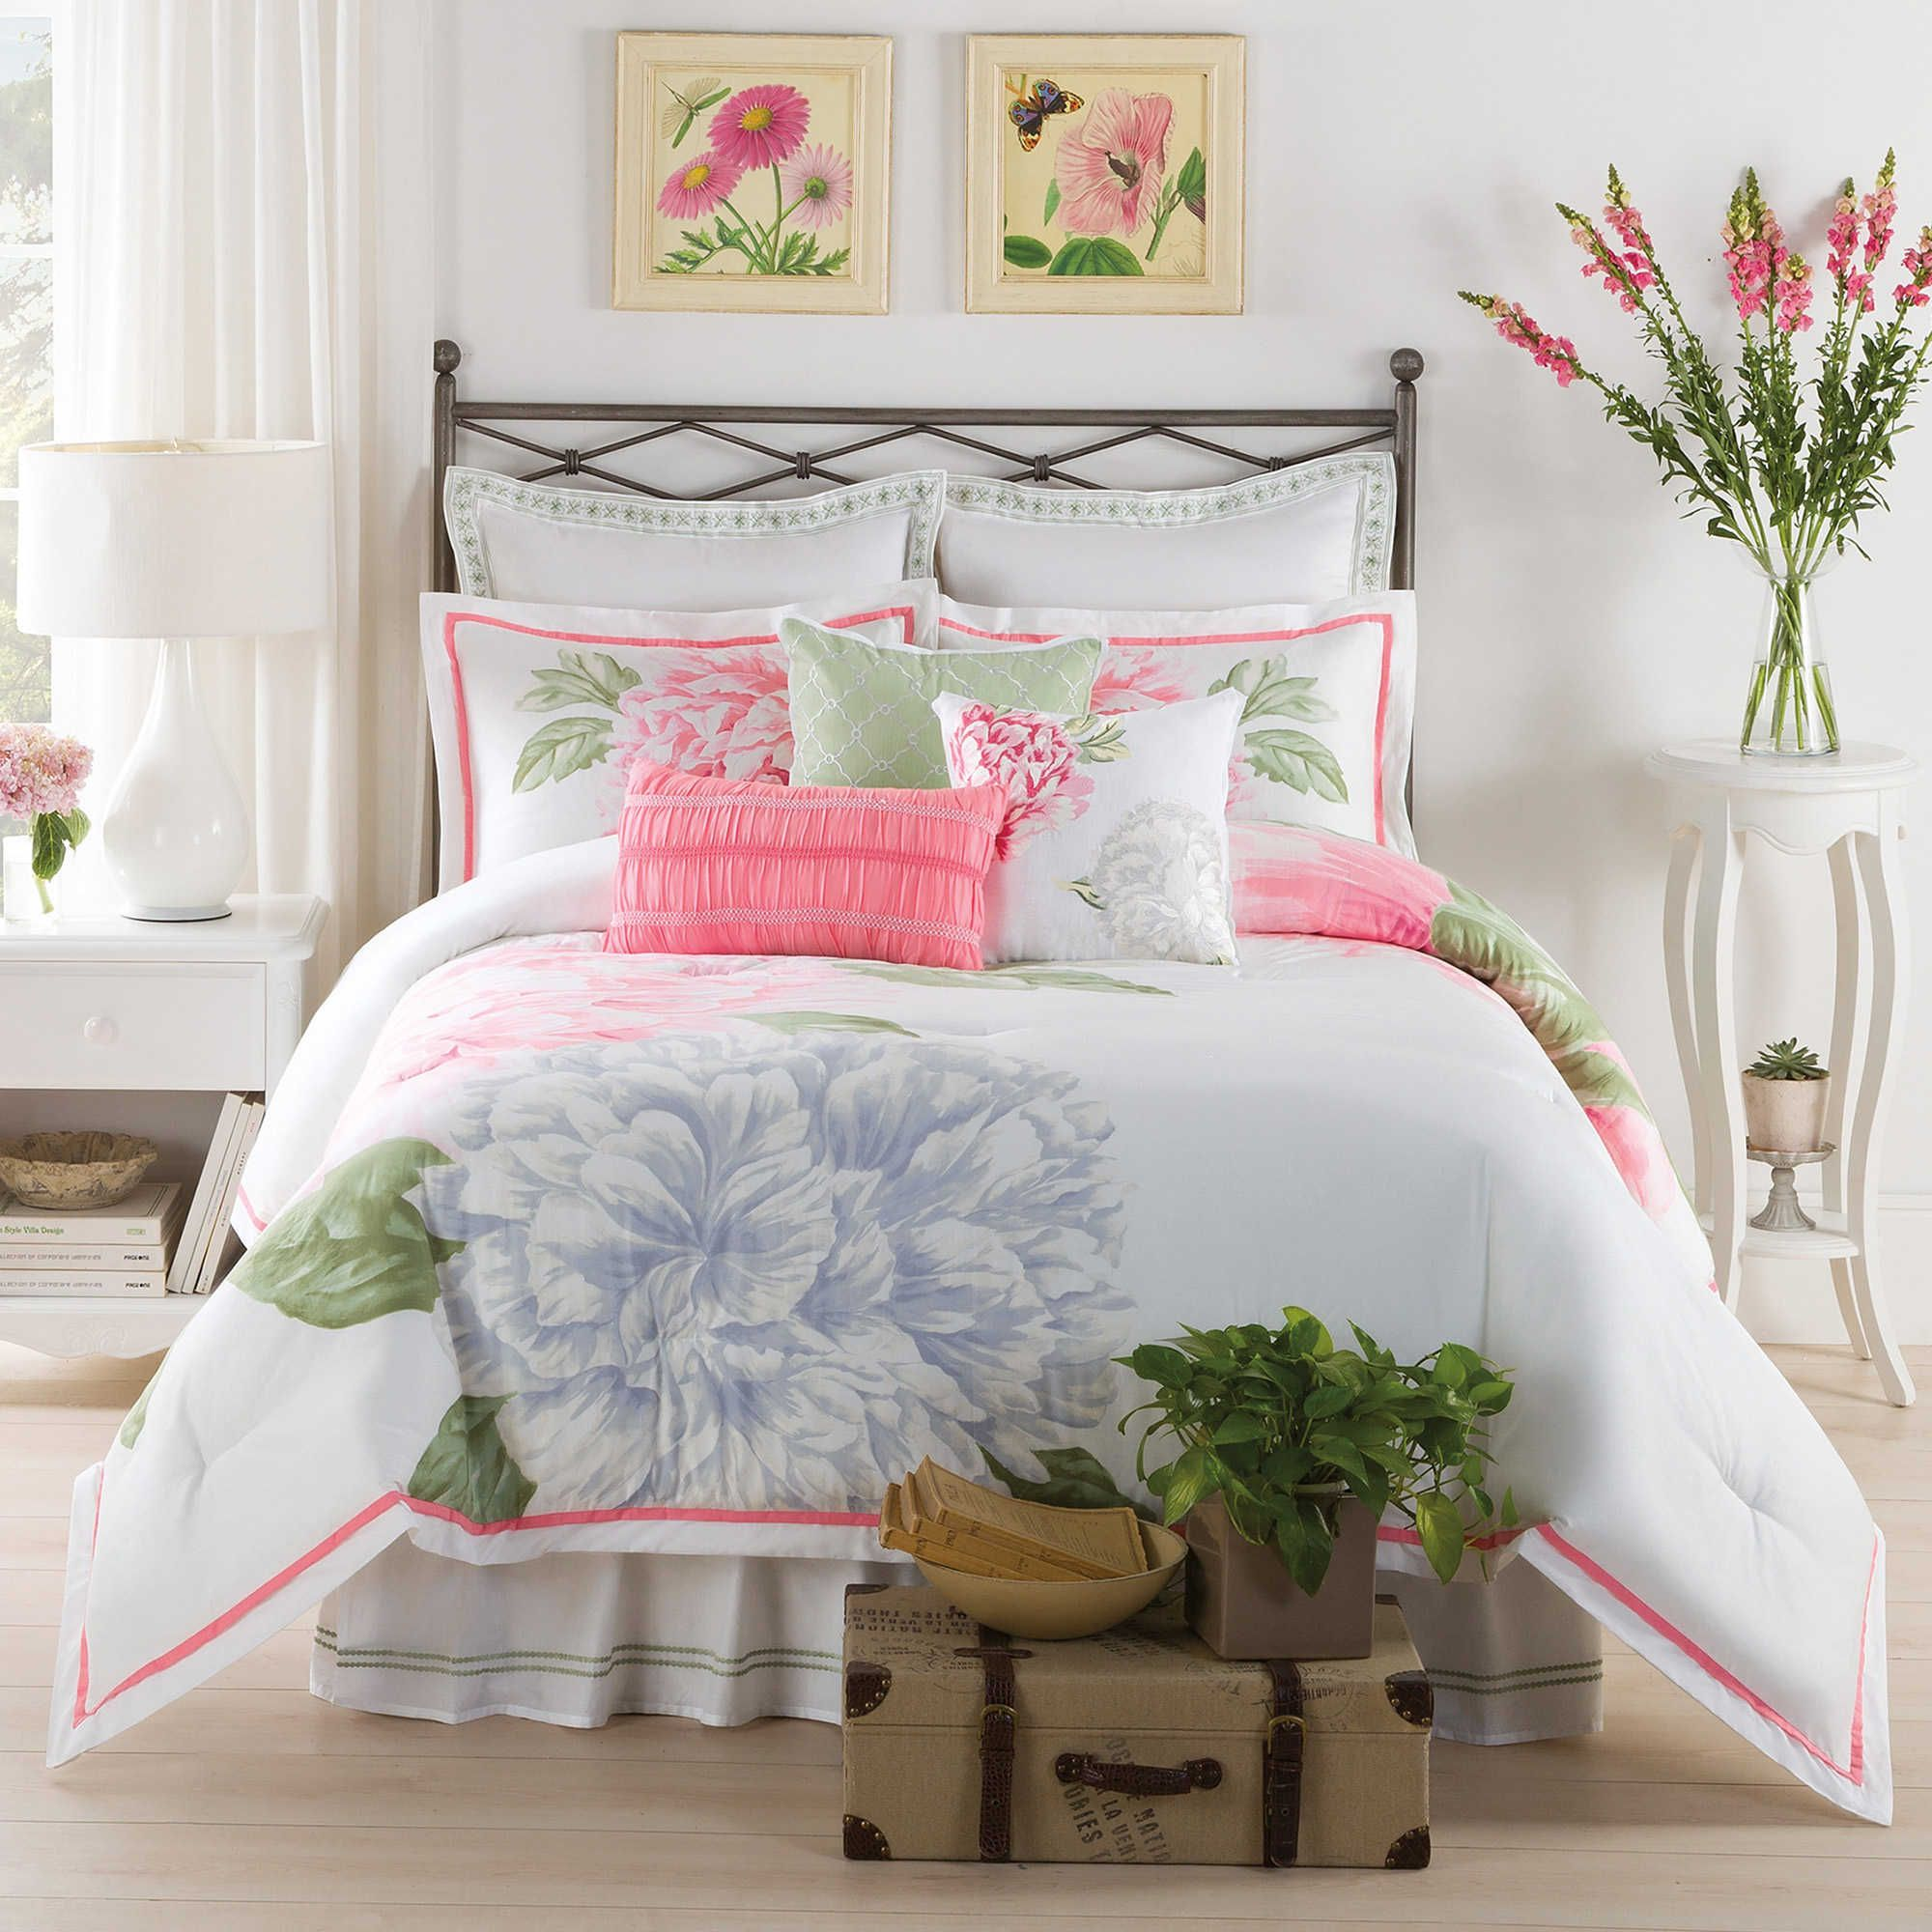 design full and on red ruffle pink home ideas sets pinterest comforter excellent for magnificent wonderful light size green bedroom awesome blush vcny of best bedding